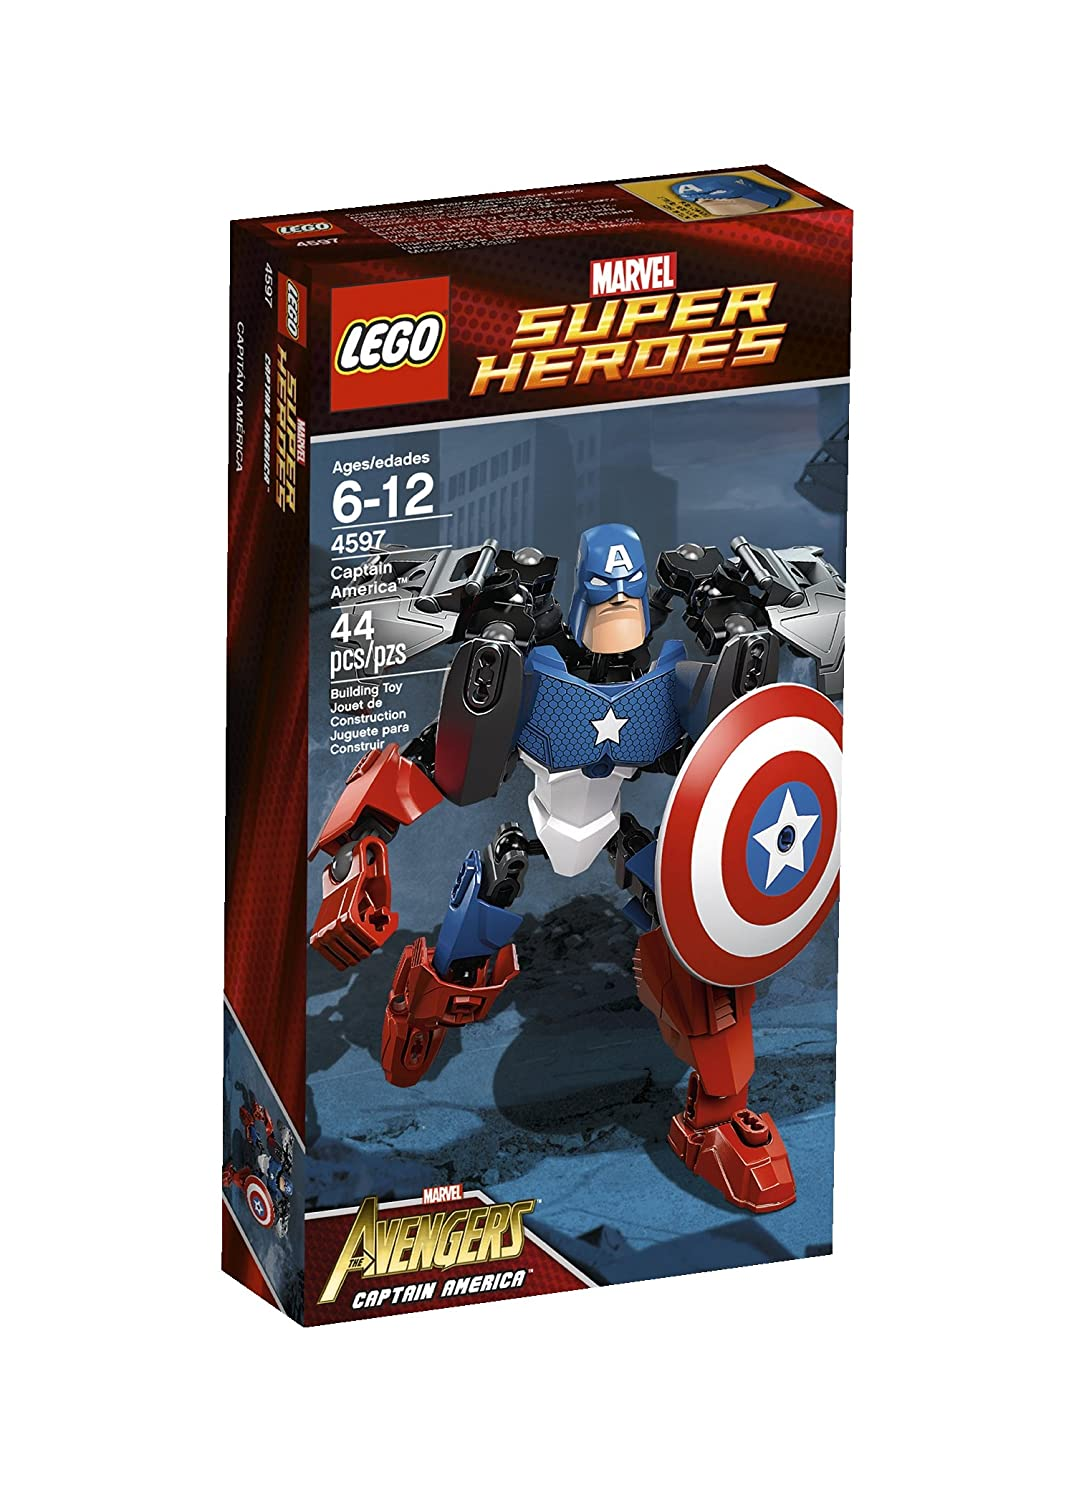 Top 9 Best LEGO Captain America Sets Reviews in 2020 2